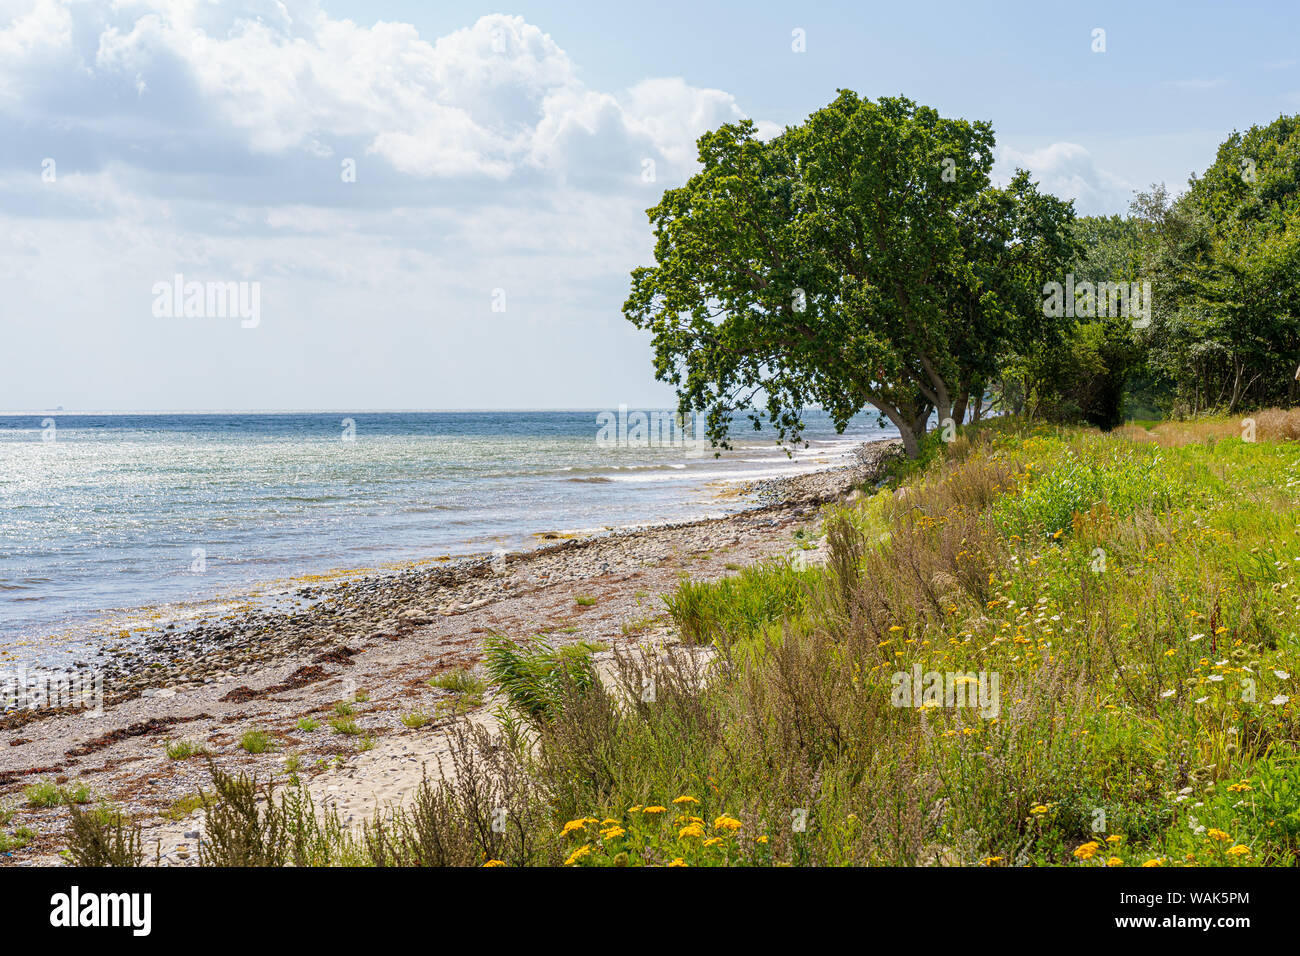 View from the coast over wooden poles in the water to the Baltic Sea Stock Photo